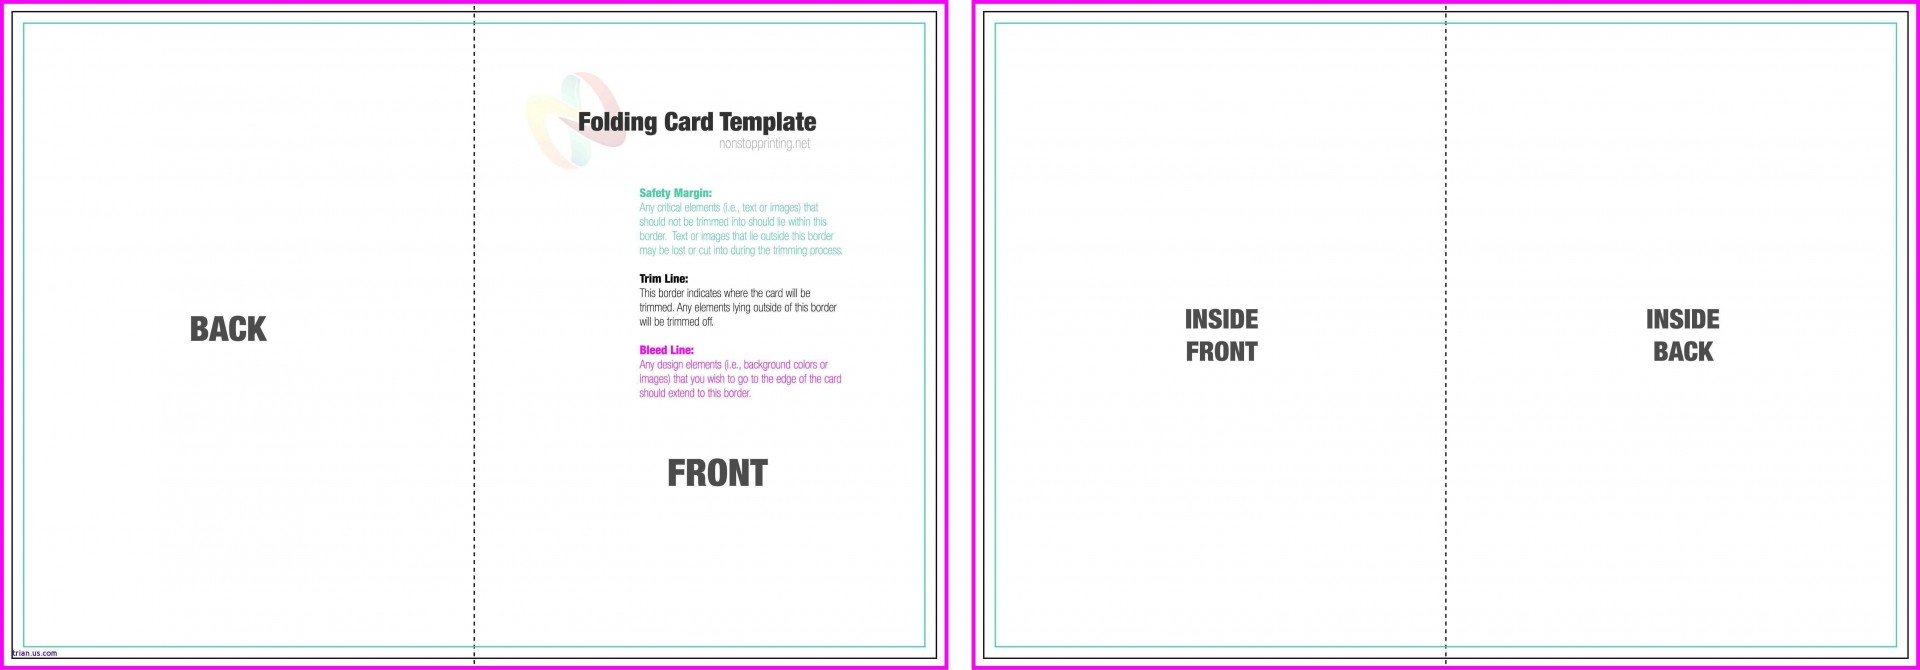 004 Incredible Quarter Fold Card Template Word Blank Highest Clarity 1920